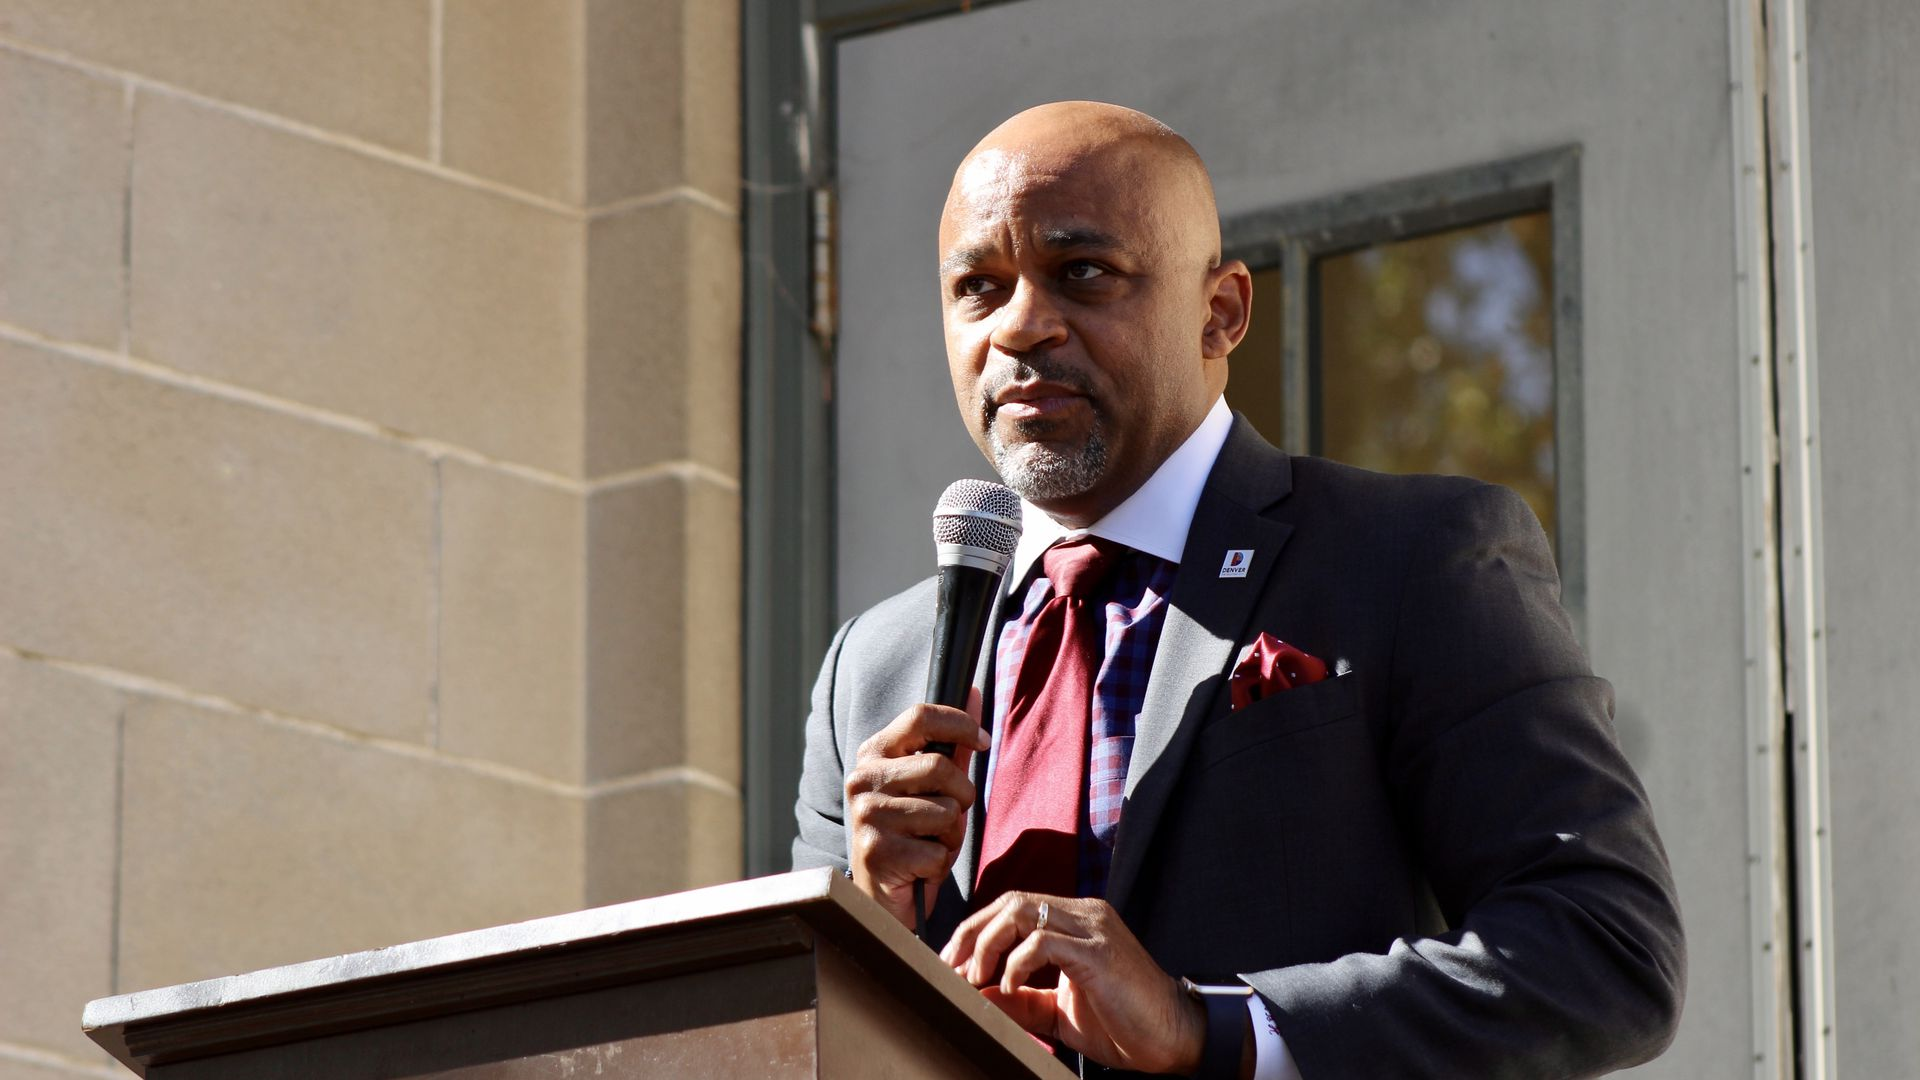 A photo of Mayor Michael Hancock outside standing behind a podium and holding a microphone